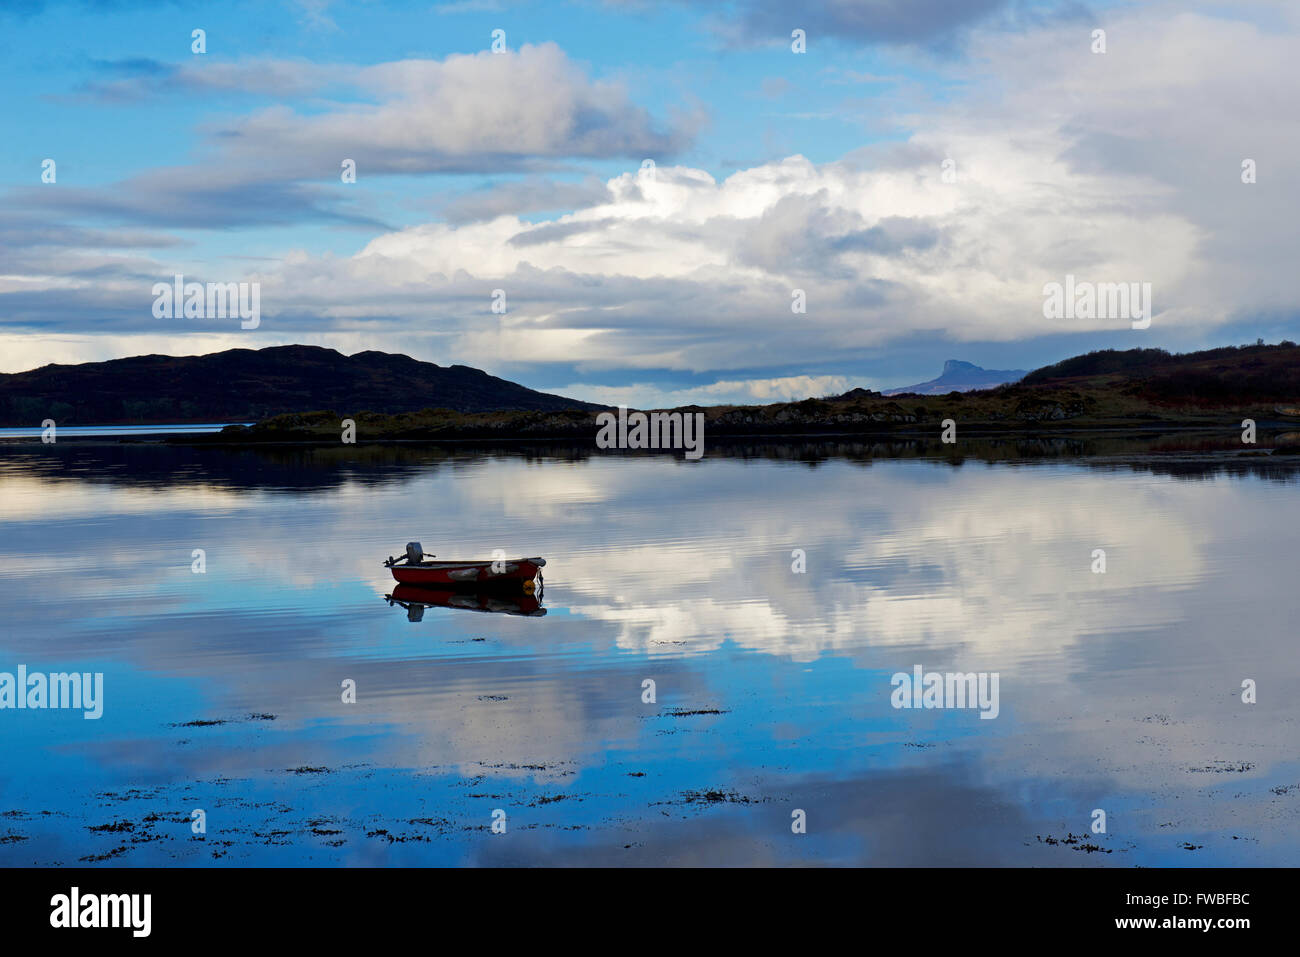 Dinghy moored in the bay, Loch nan Ceall, at Arisaig, Inverness-shire, Scottish Highlands, Scotland UK Stock Photo